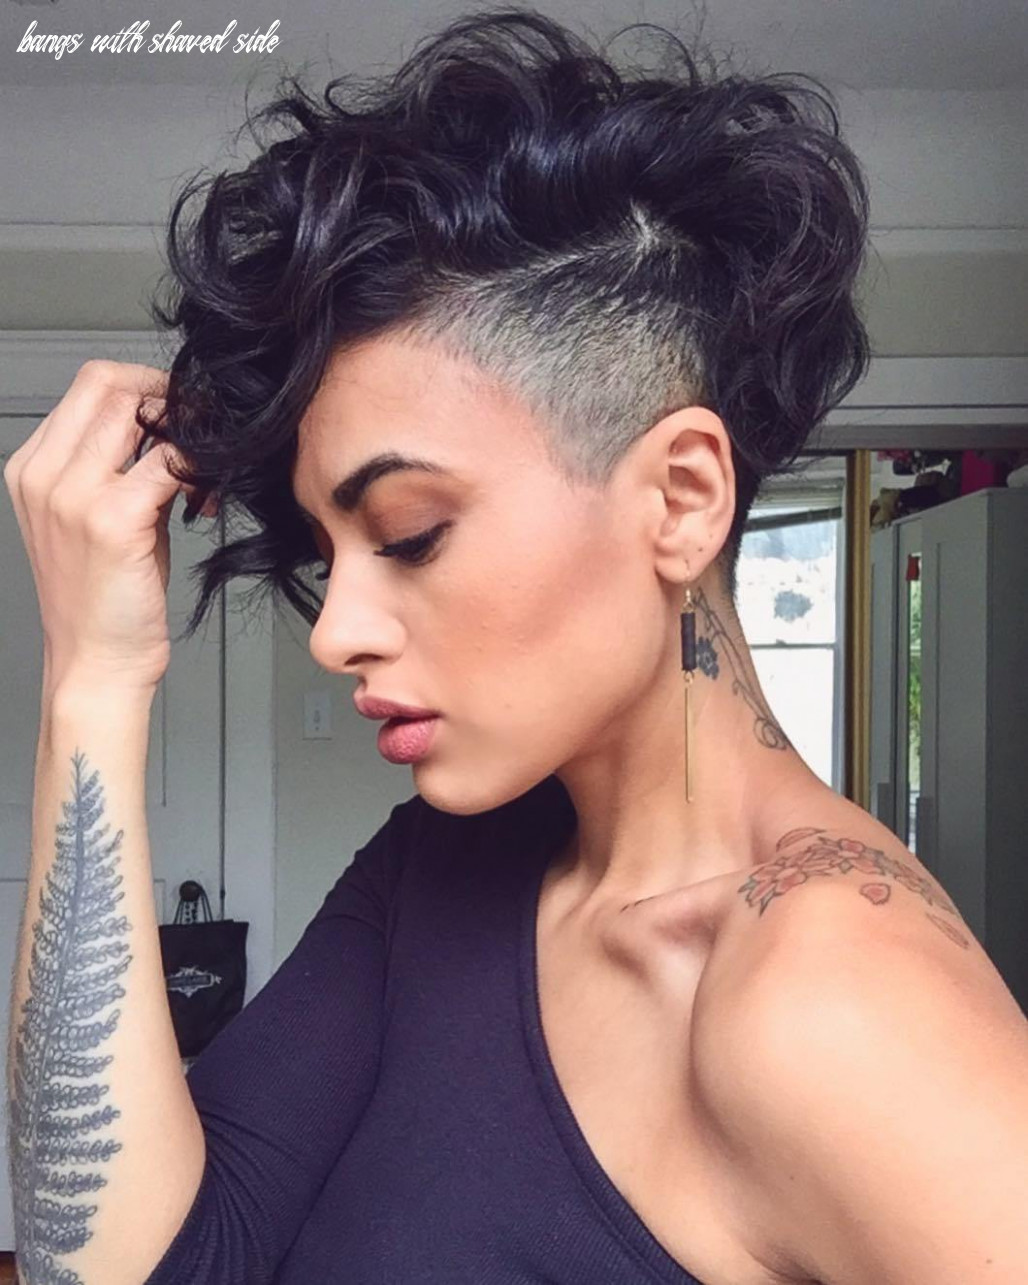 12 Bold Shaved Hairstyles for Women   Shaved Hair Designs